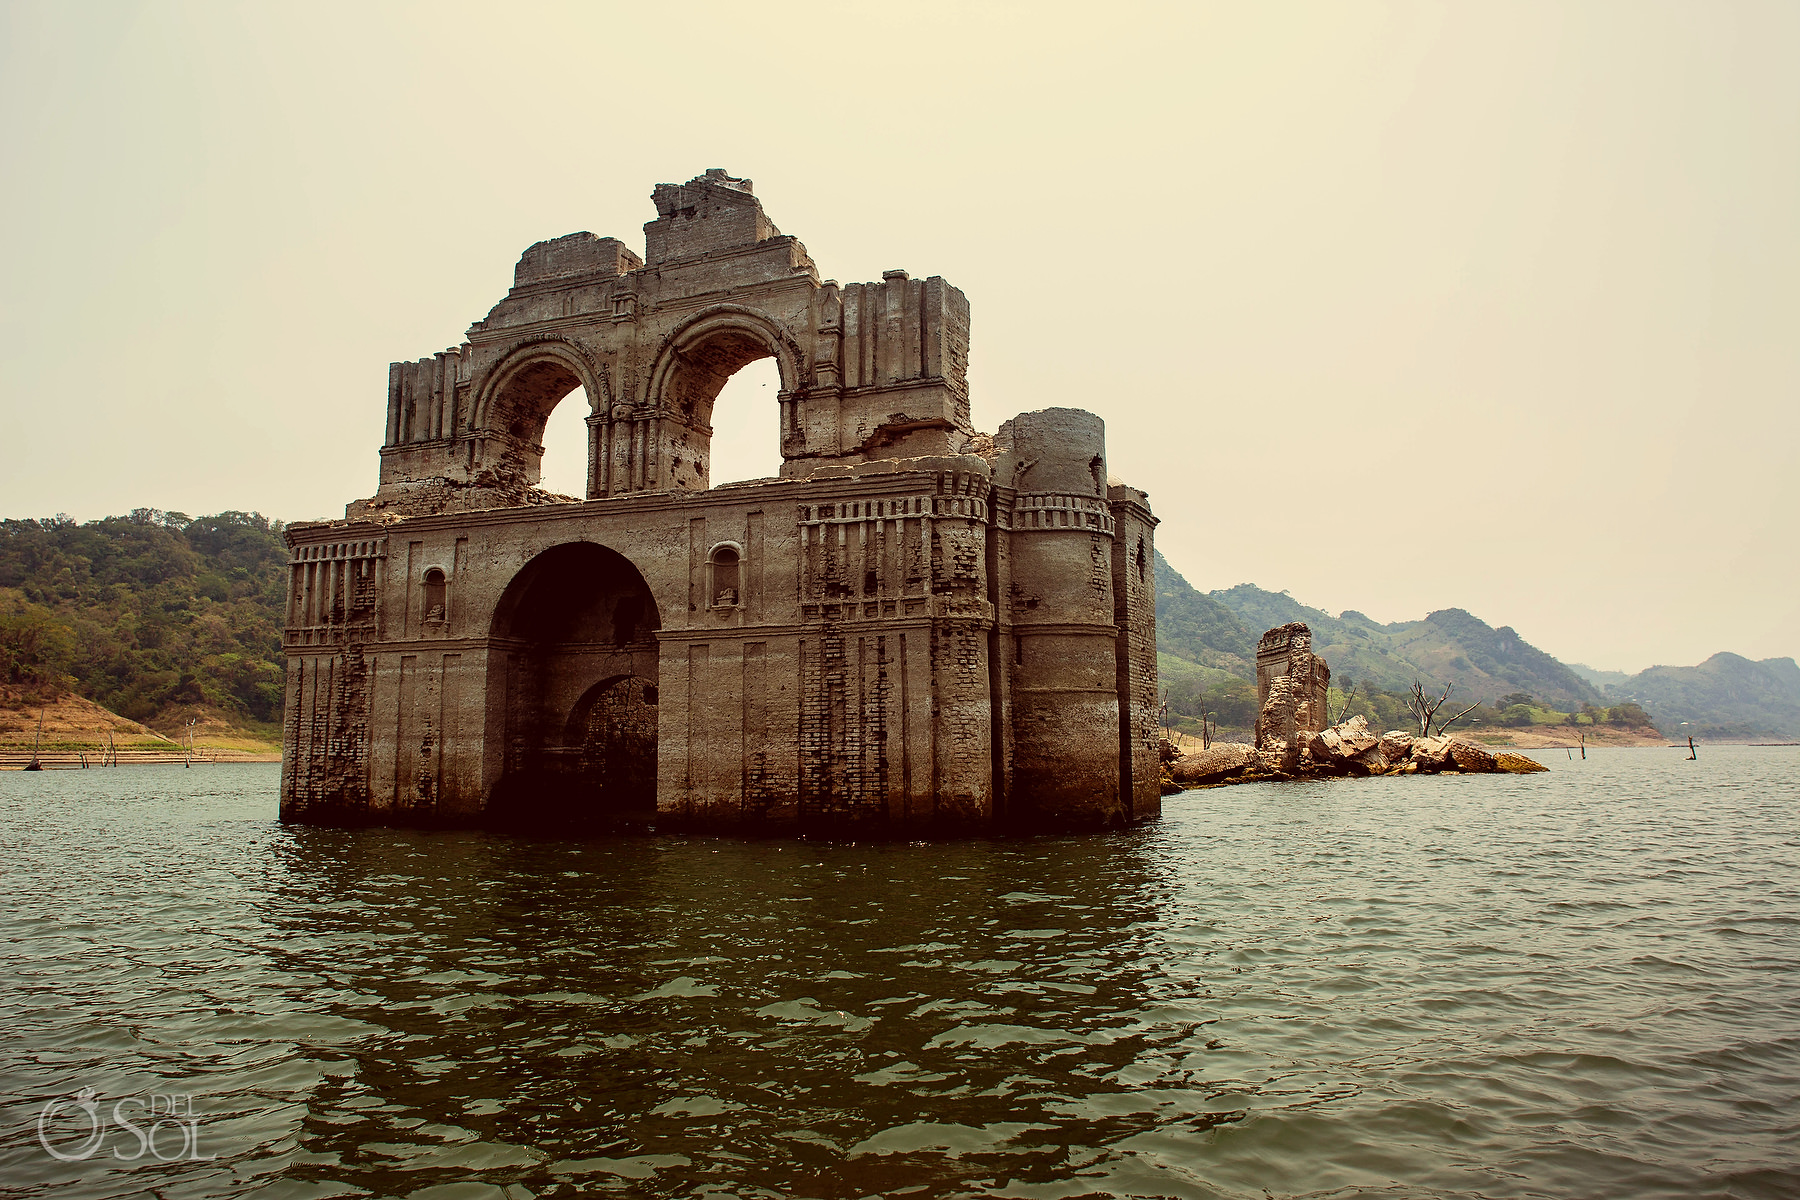 Epic Church out of the water in the lake in chiapas